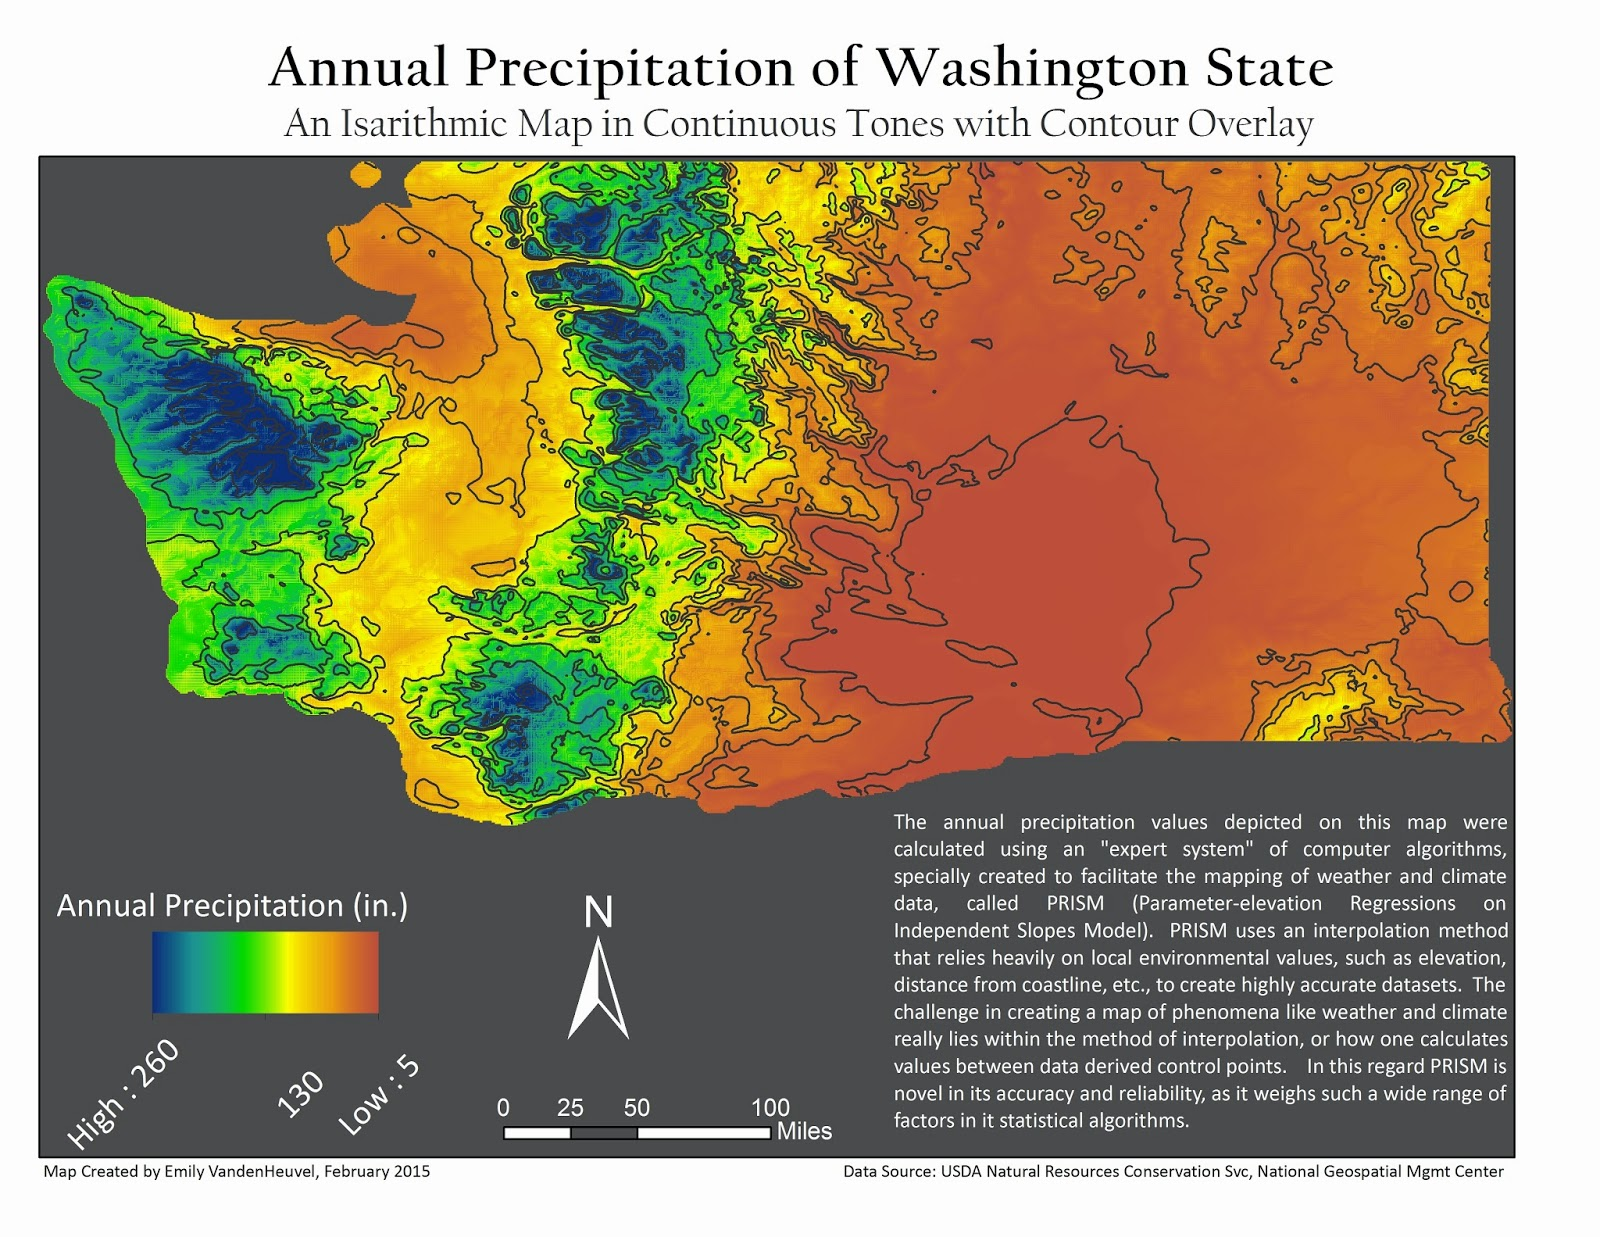 the 2 maps here use the same data annual precipitation of washington state but employ different methods of classification and display